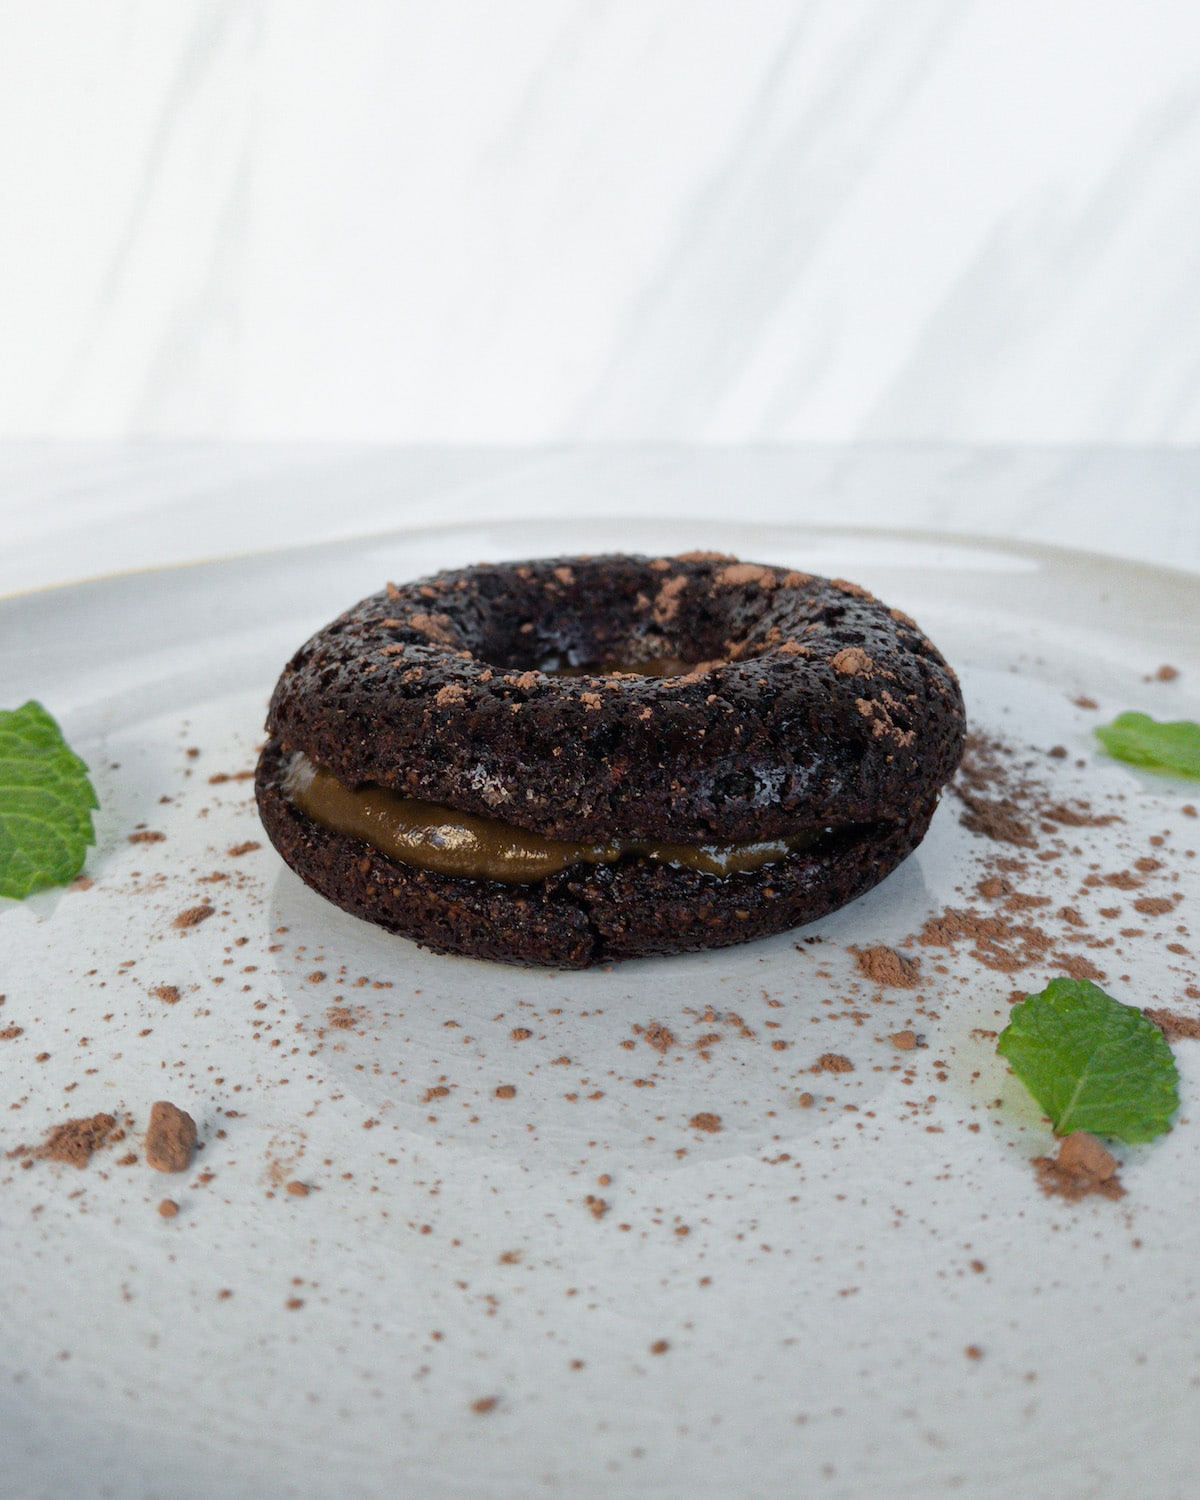 side angle of donut on plate with mint leaves